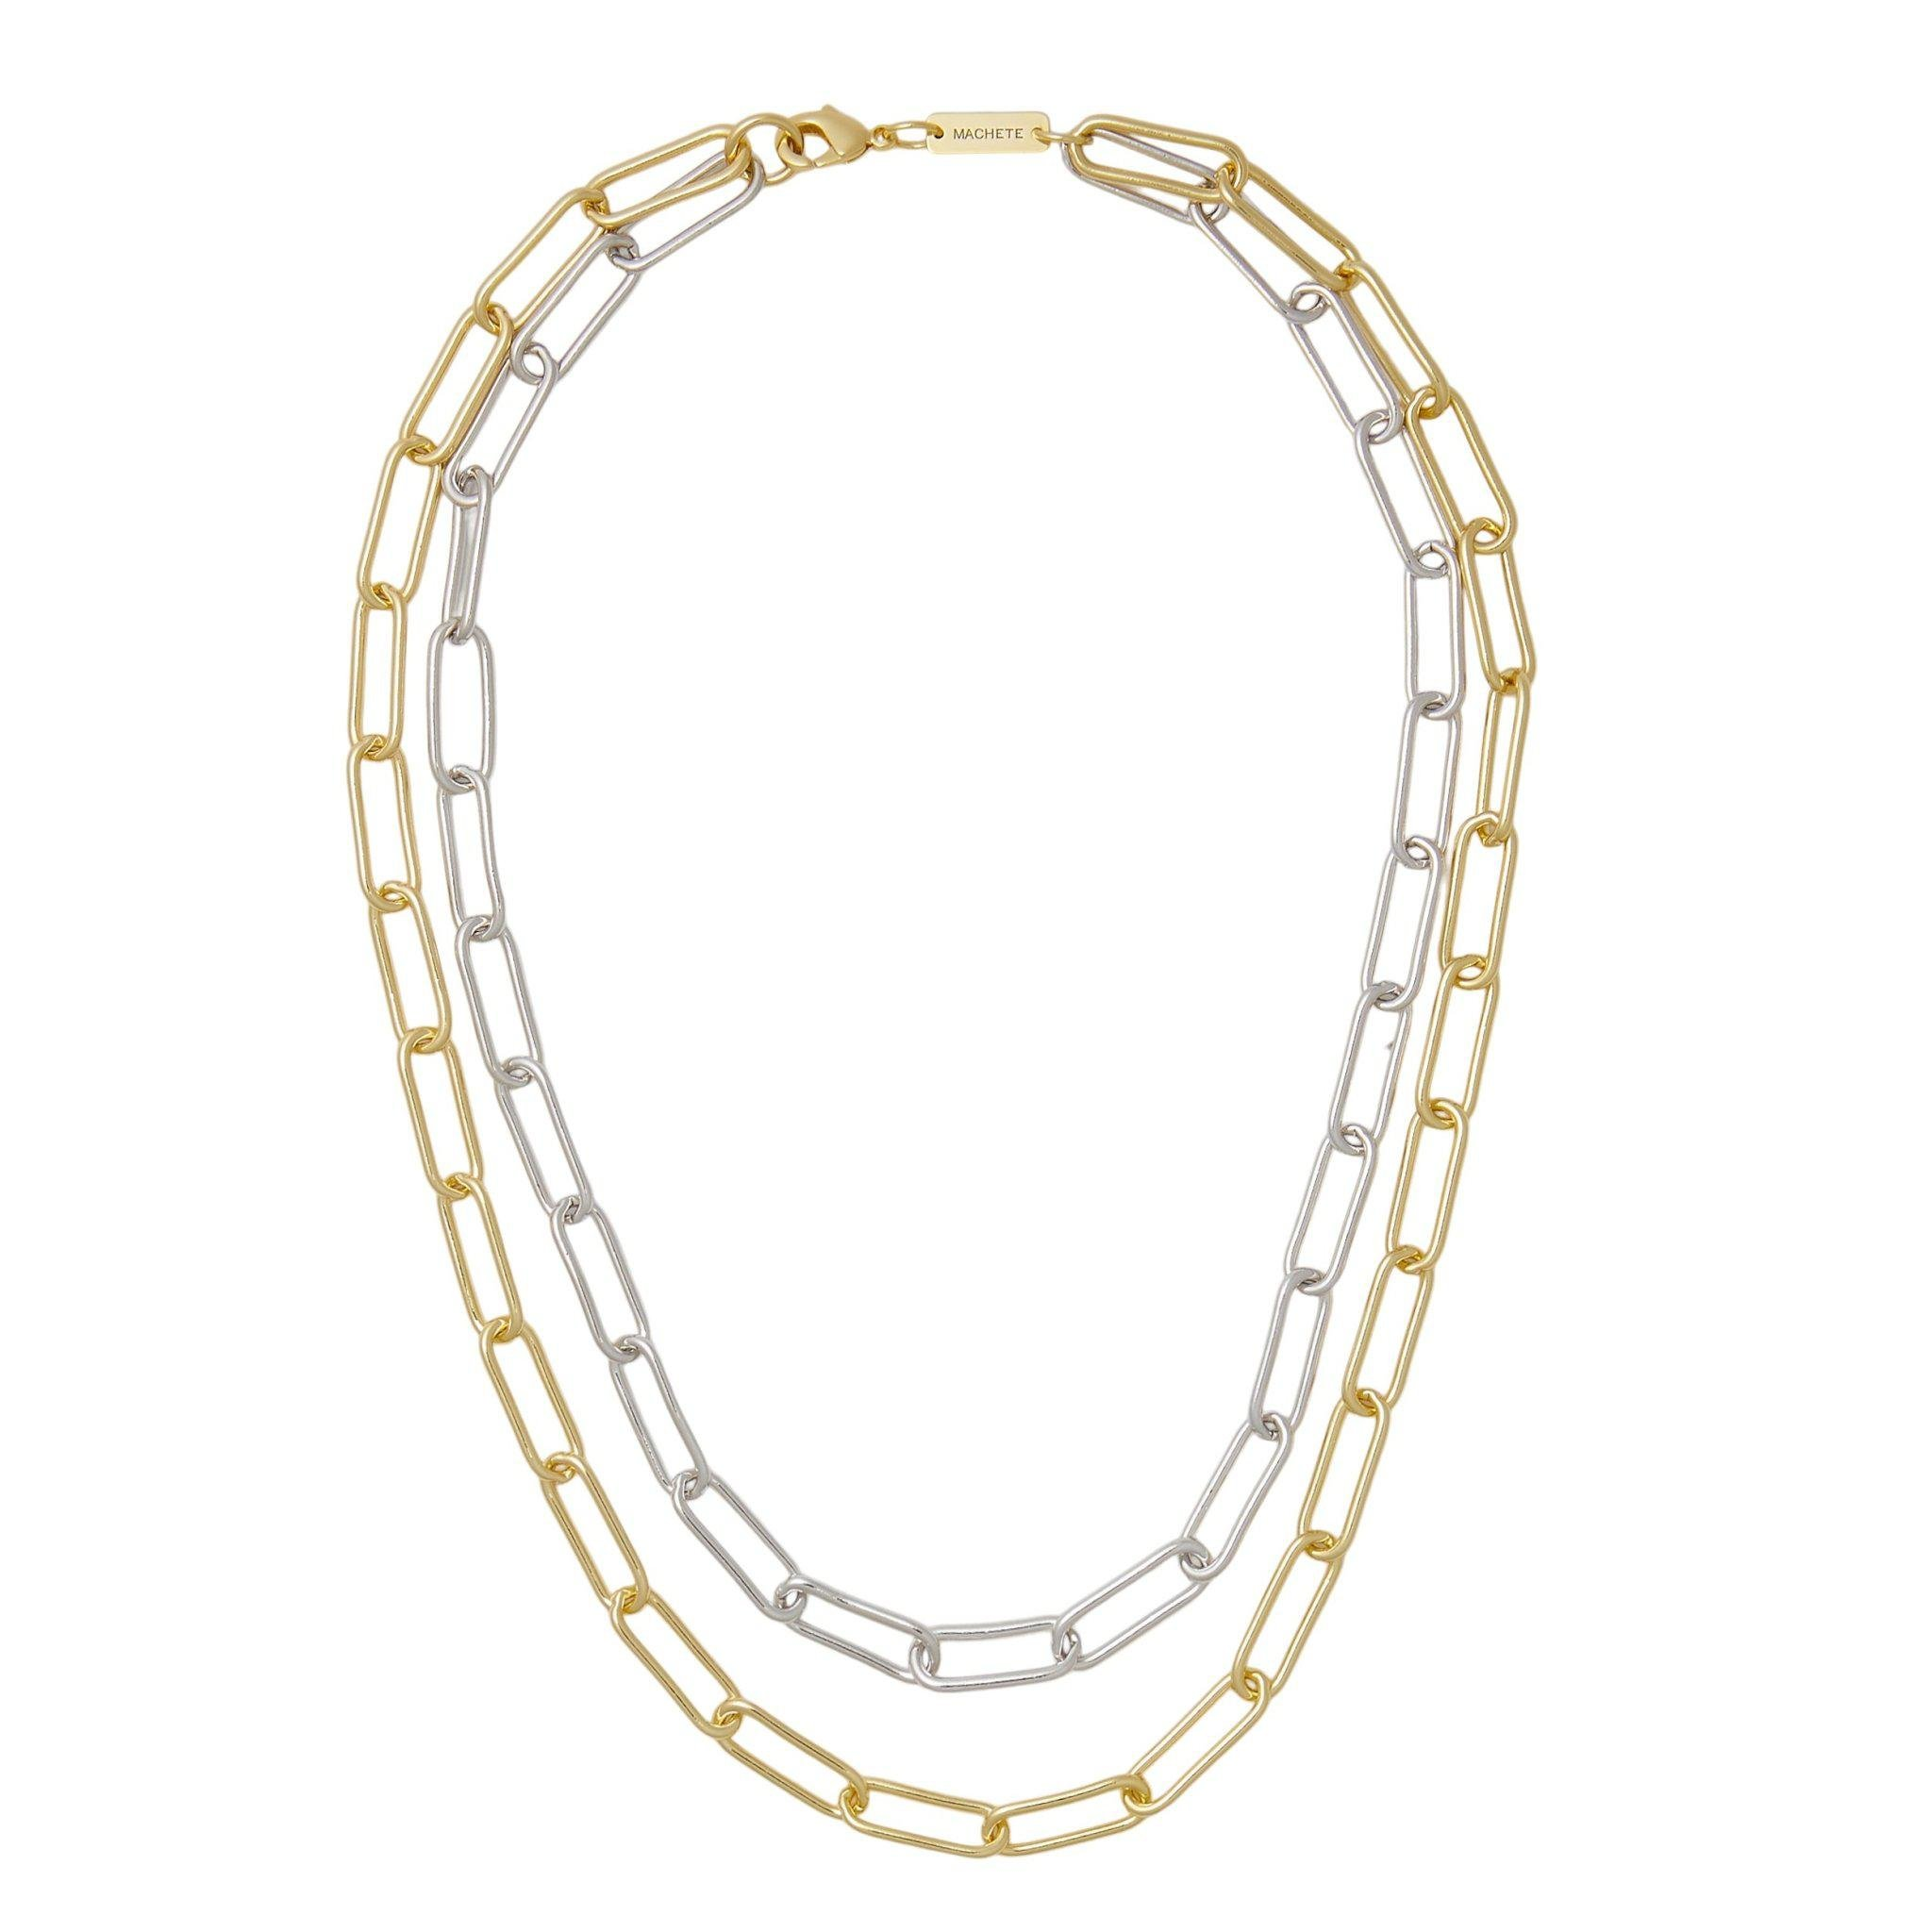 Paperclip Chain Layered Necklace in Mixed Metals